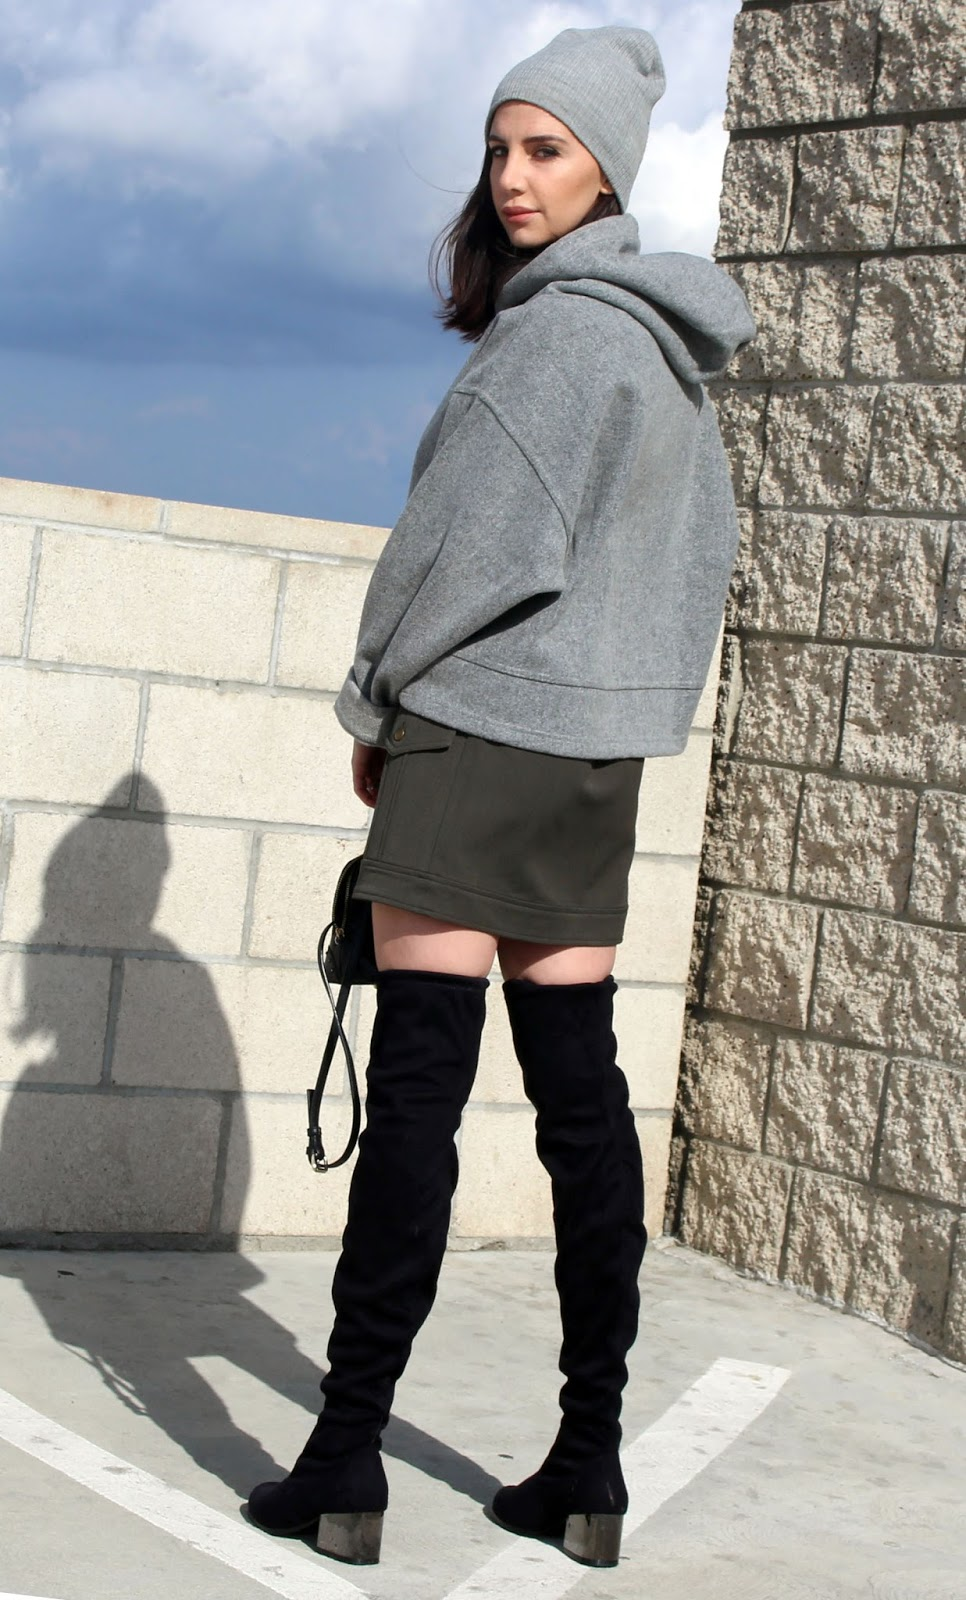 over knee boots, hoodie, army green mini skirt